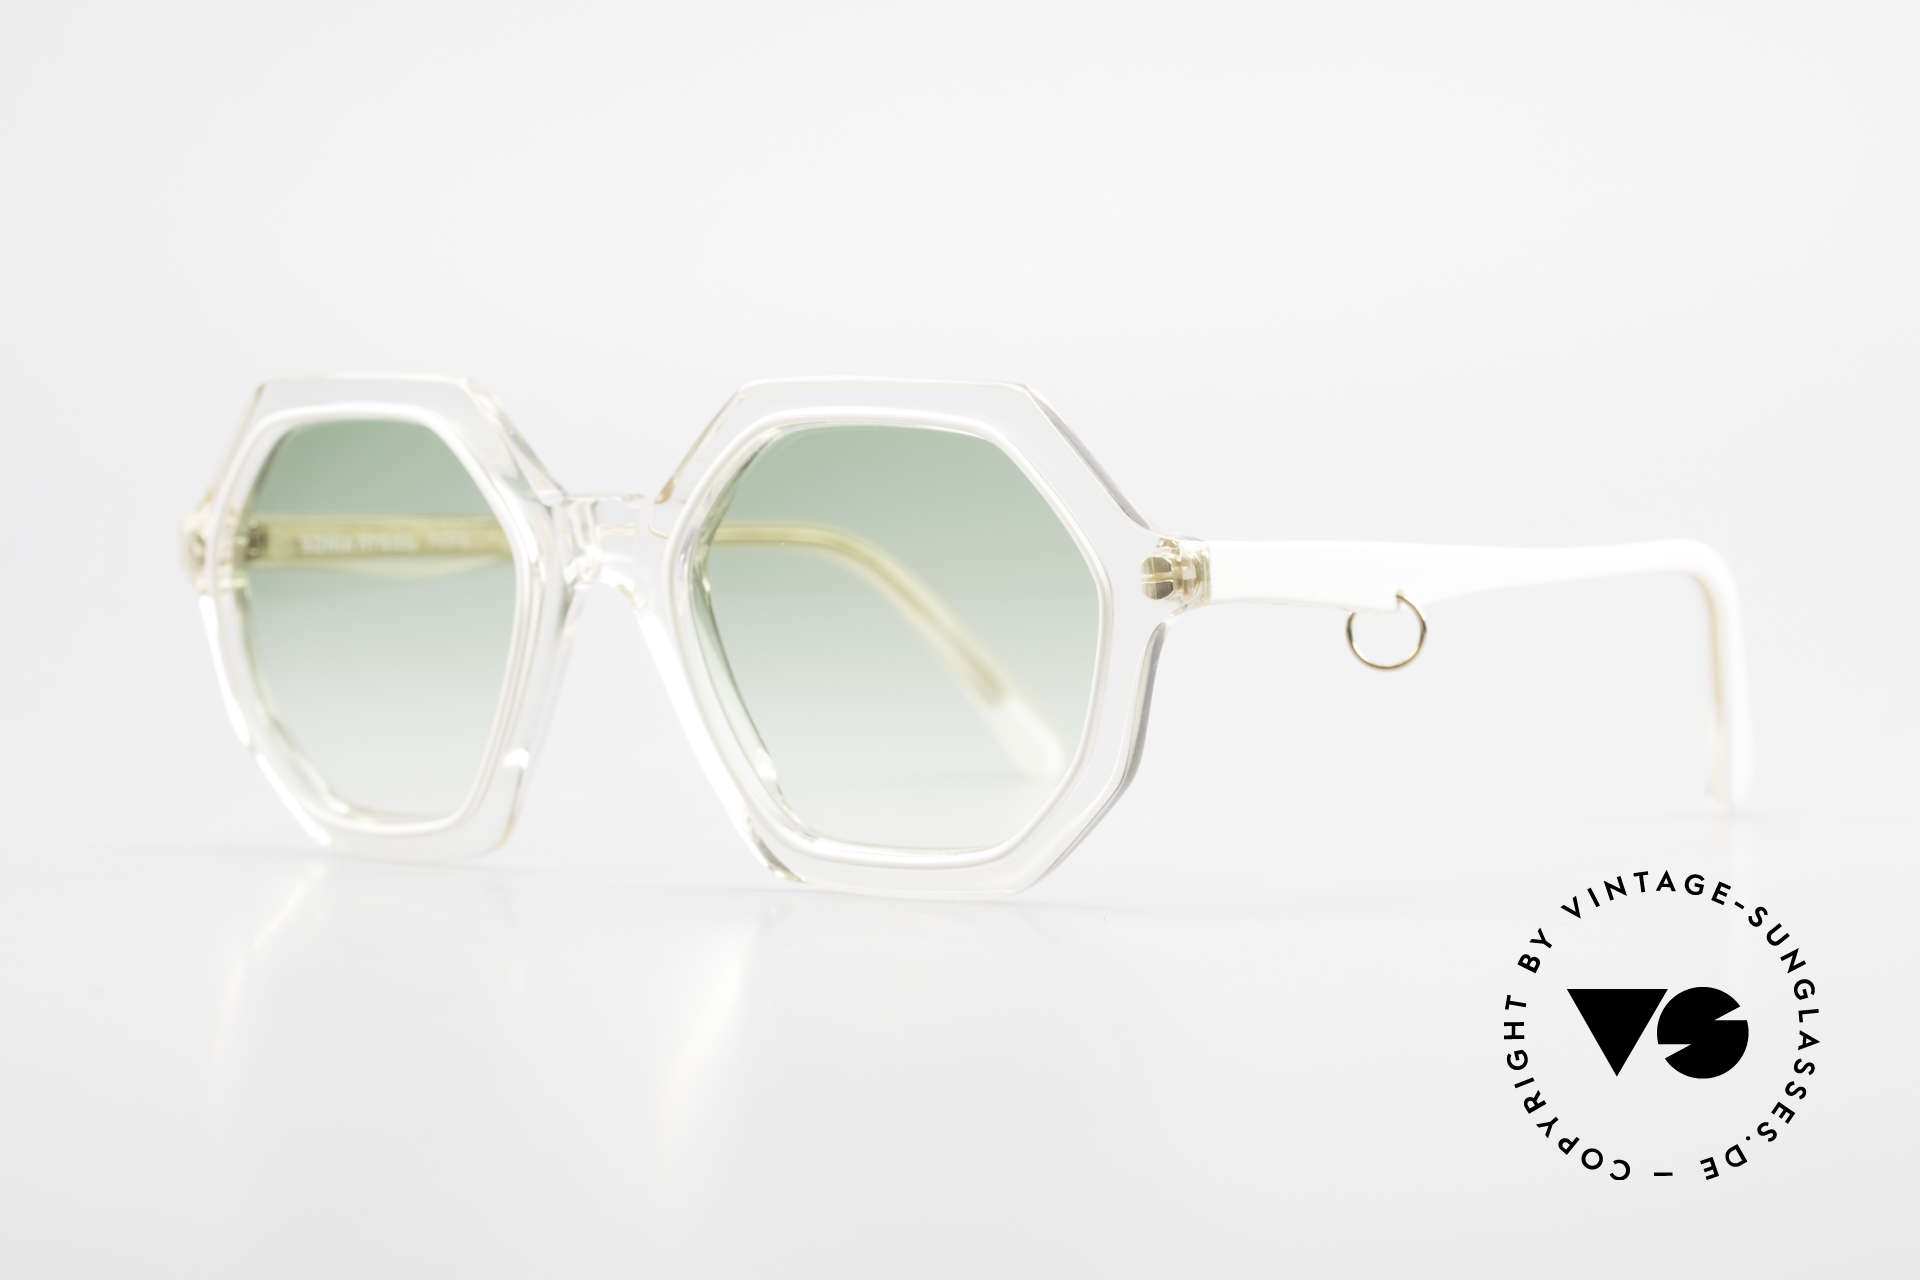 Sonia Rykiel SR46 444 Octagonal Sunglasses 1970's, perfect to create your individual outfit - just UNIQUE!, Made for Women